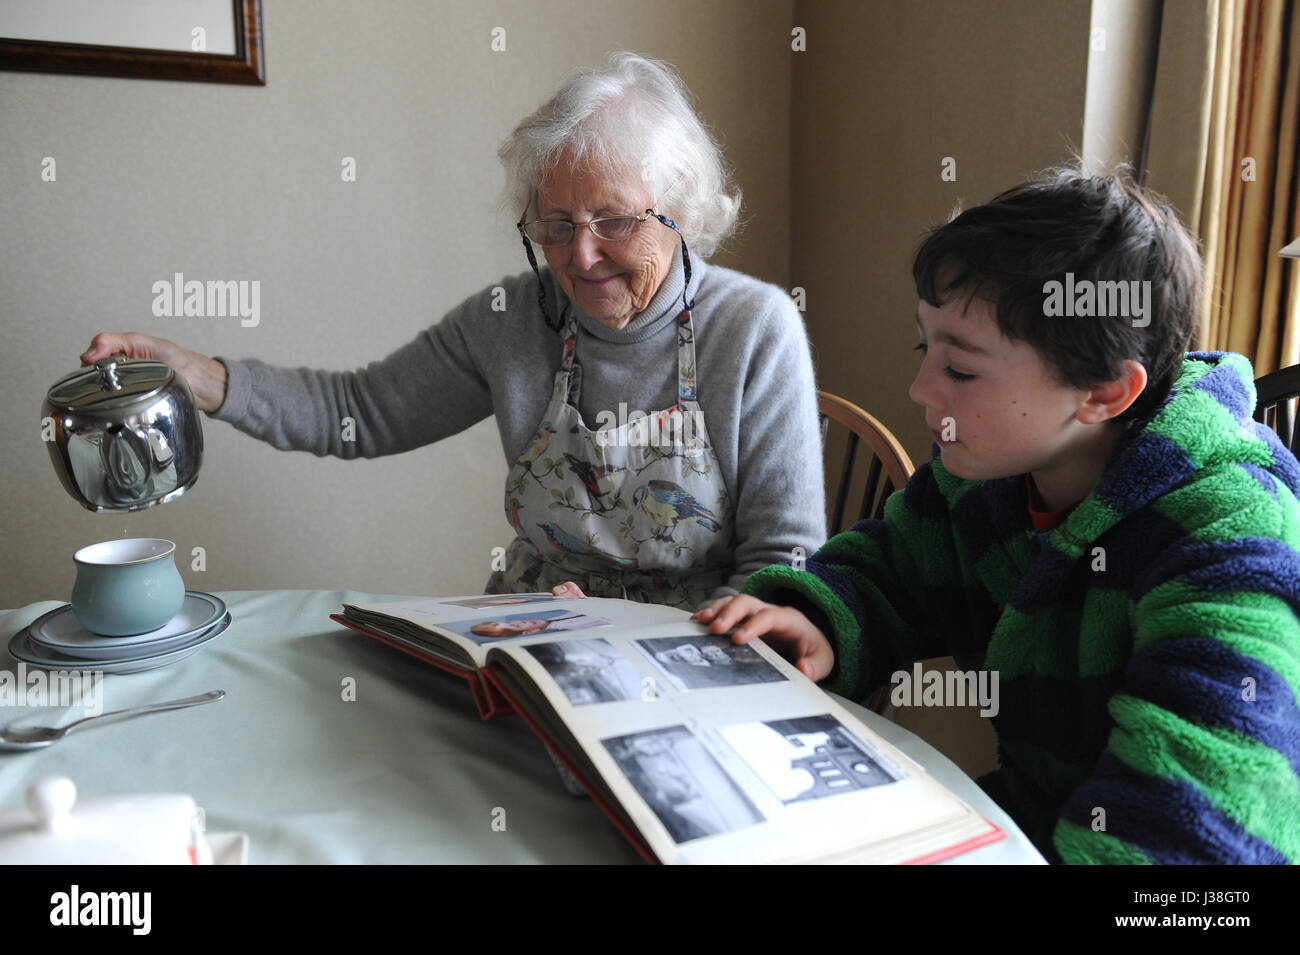 81 year old Grandmother and 12 year old grandchild looking at a photo album - Stock Image